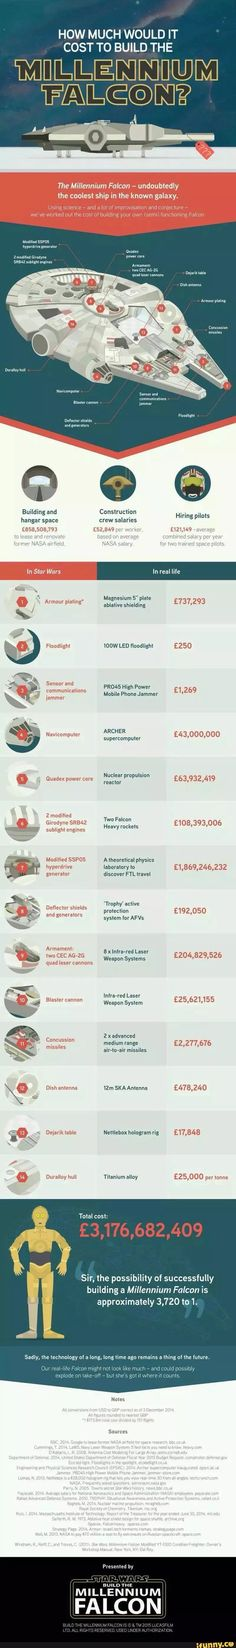 How Much Exactly Would a Millennium Falcon Cost to Build? [INFOGRAPHIC] How much would it cost to build the Millennium Falcon?How much would it cost to build the Millennium Falcon? Star Wars Ships, Star Wars Art, Star Trek, Millennium Falcon, Gq, Einstein, Cost To Build, Richard Madden, Rebel Alliance